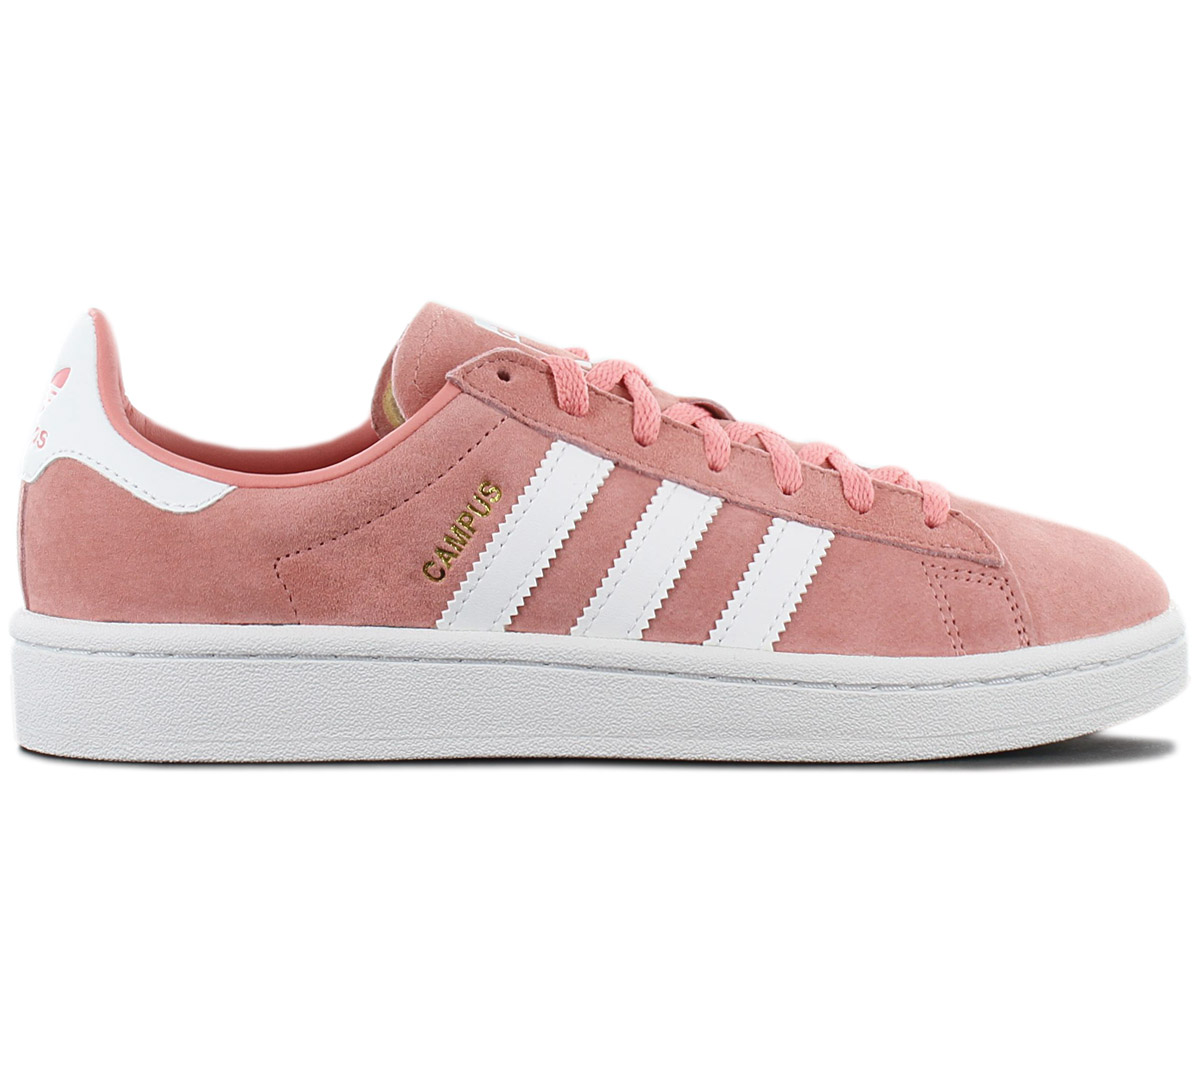 Women Men Adidas Campus W (Pink White) B41939 Tacros